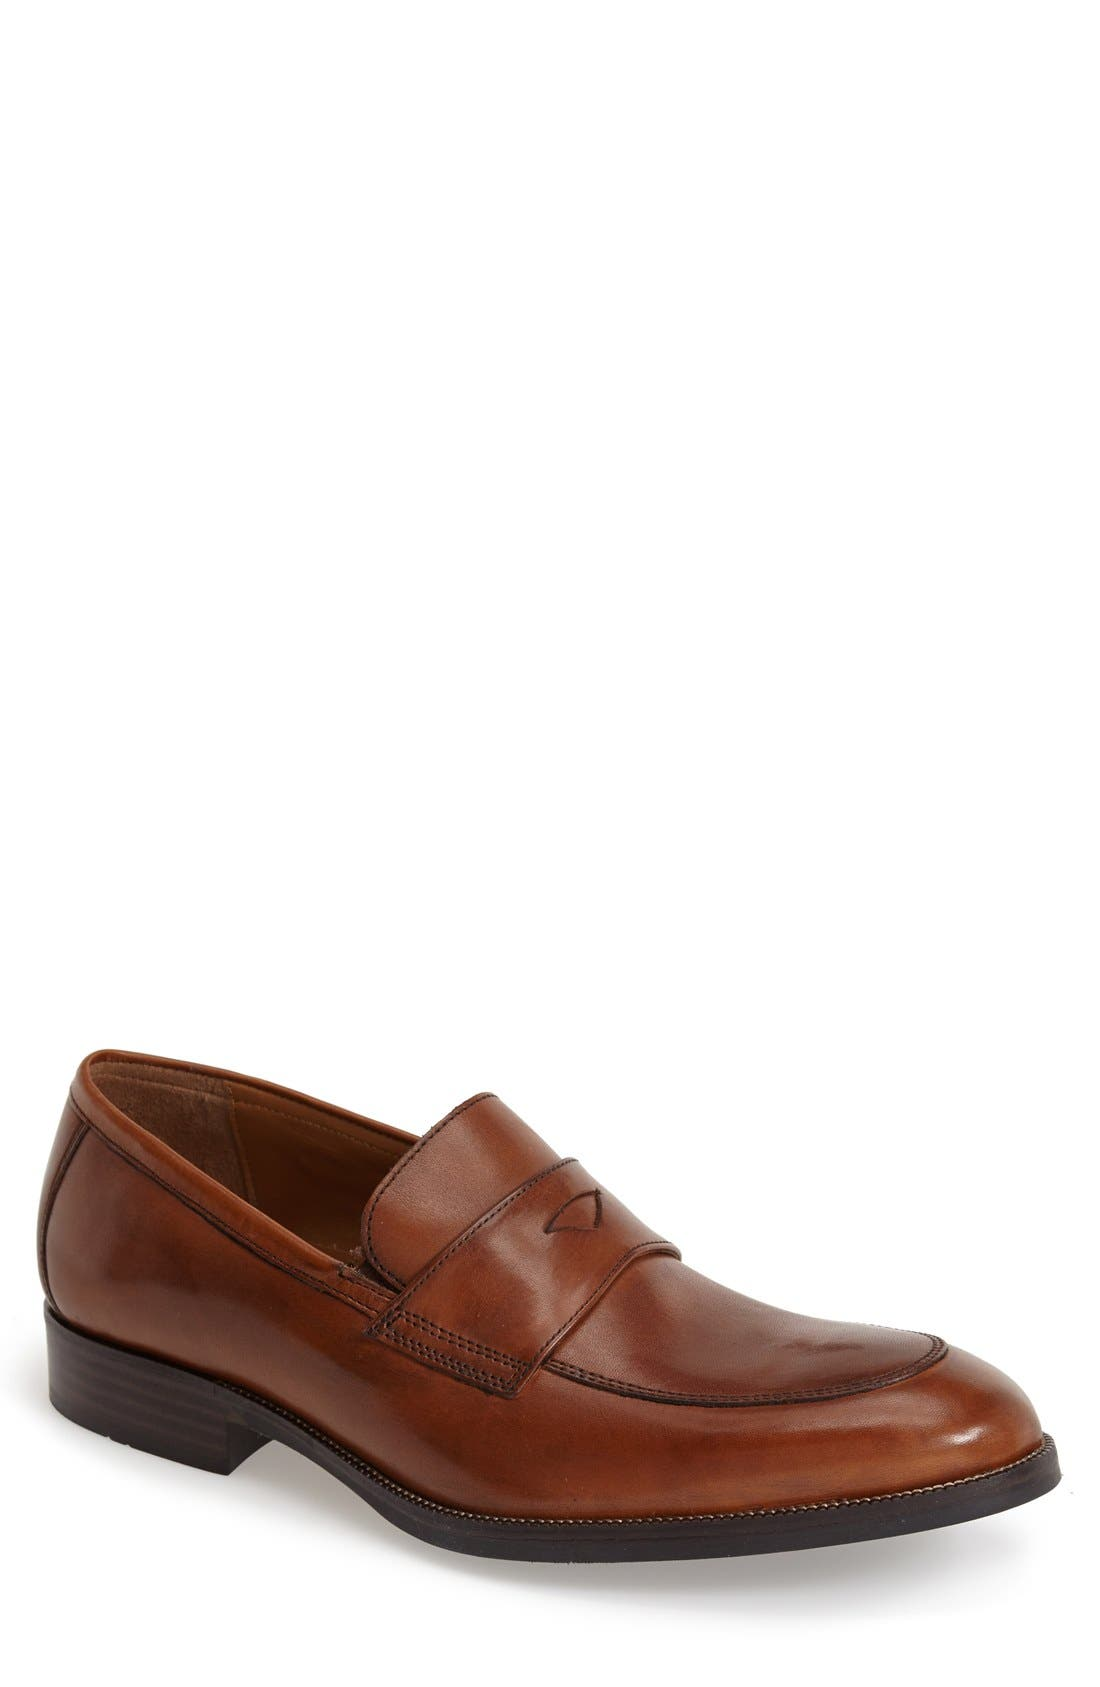 Johnston & Murphy 'Beckwith' Penny Loafer (Men)